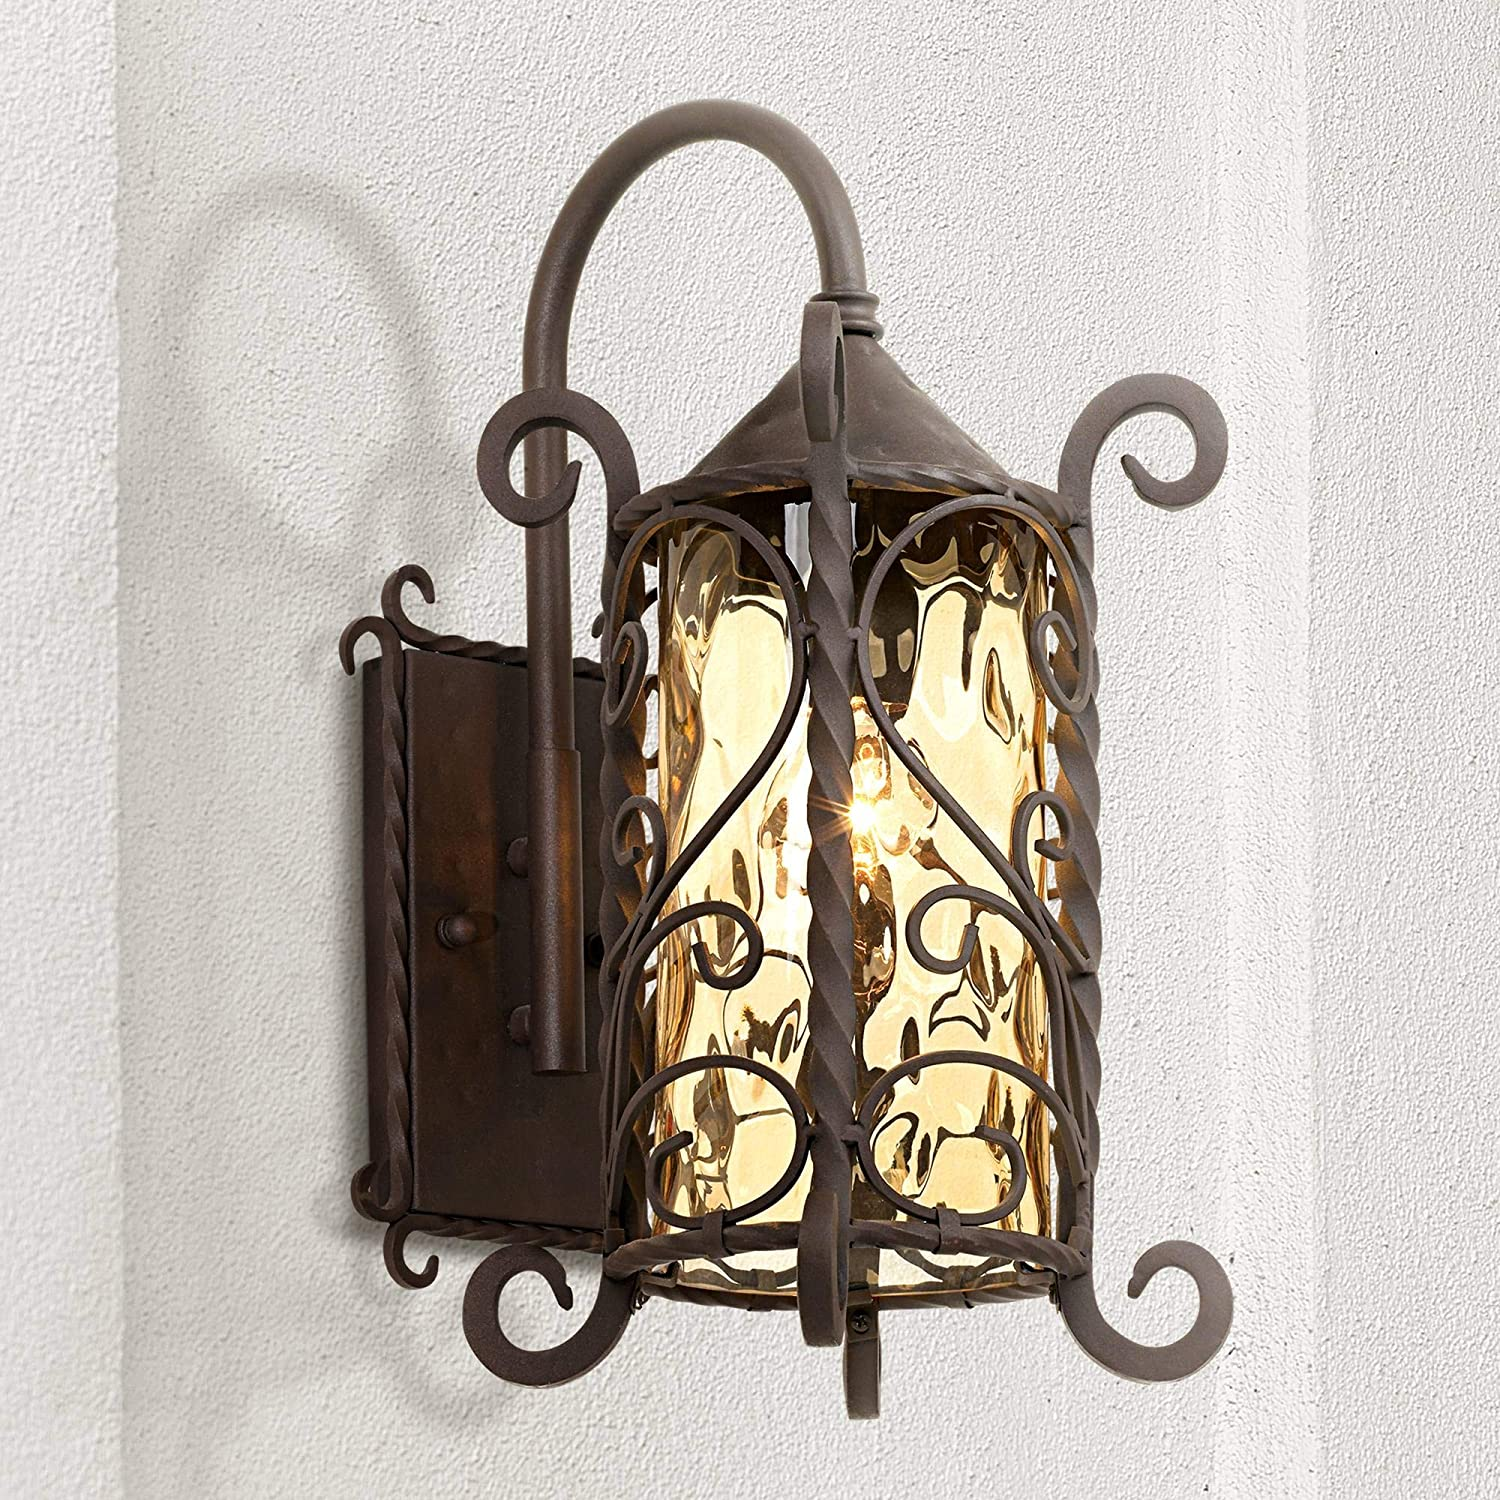 "Casa Seville Rustic Outdoor Wall Light Fixture Mediterranean Inspired Dark Walnut Iron Twists 18 1/2"" Champagne Hammered Glass for Exterior House Porch Patio Deck - John Timberland"